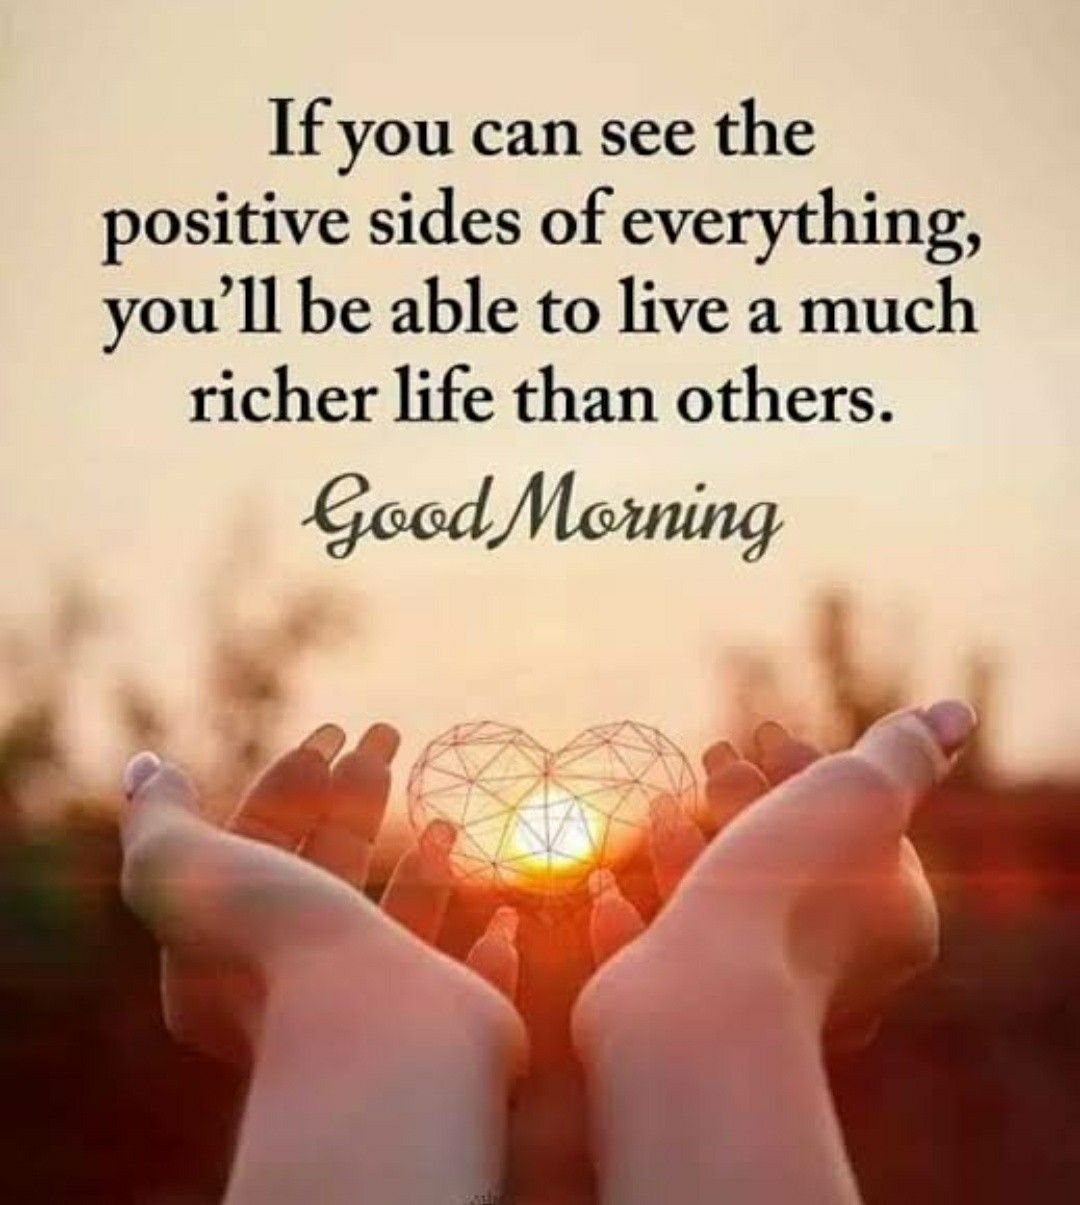 Pin By Dinesh Kumar Pandey On Good Morning Good Morning Sunshine Quotes Good Morning Quotes Sunshine Quotes